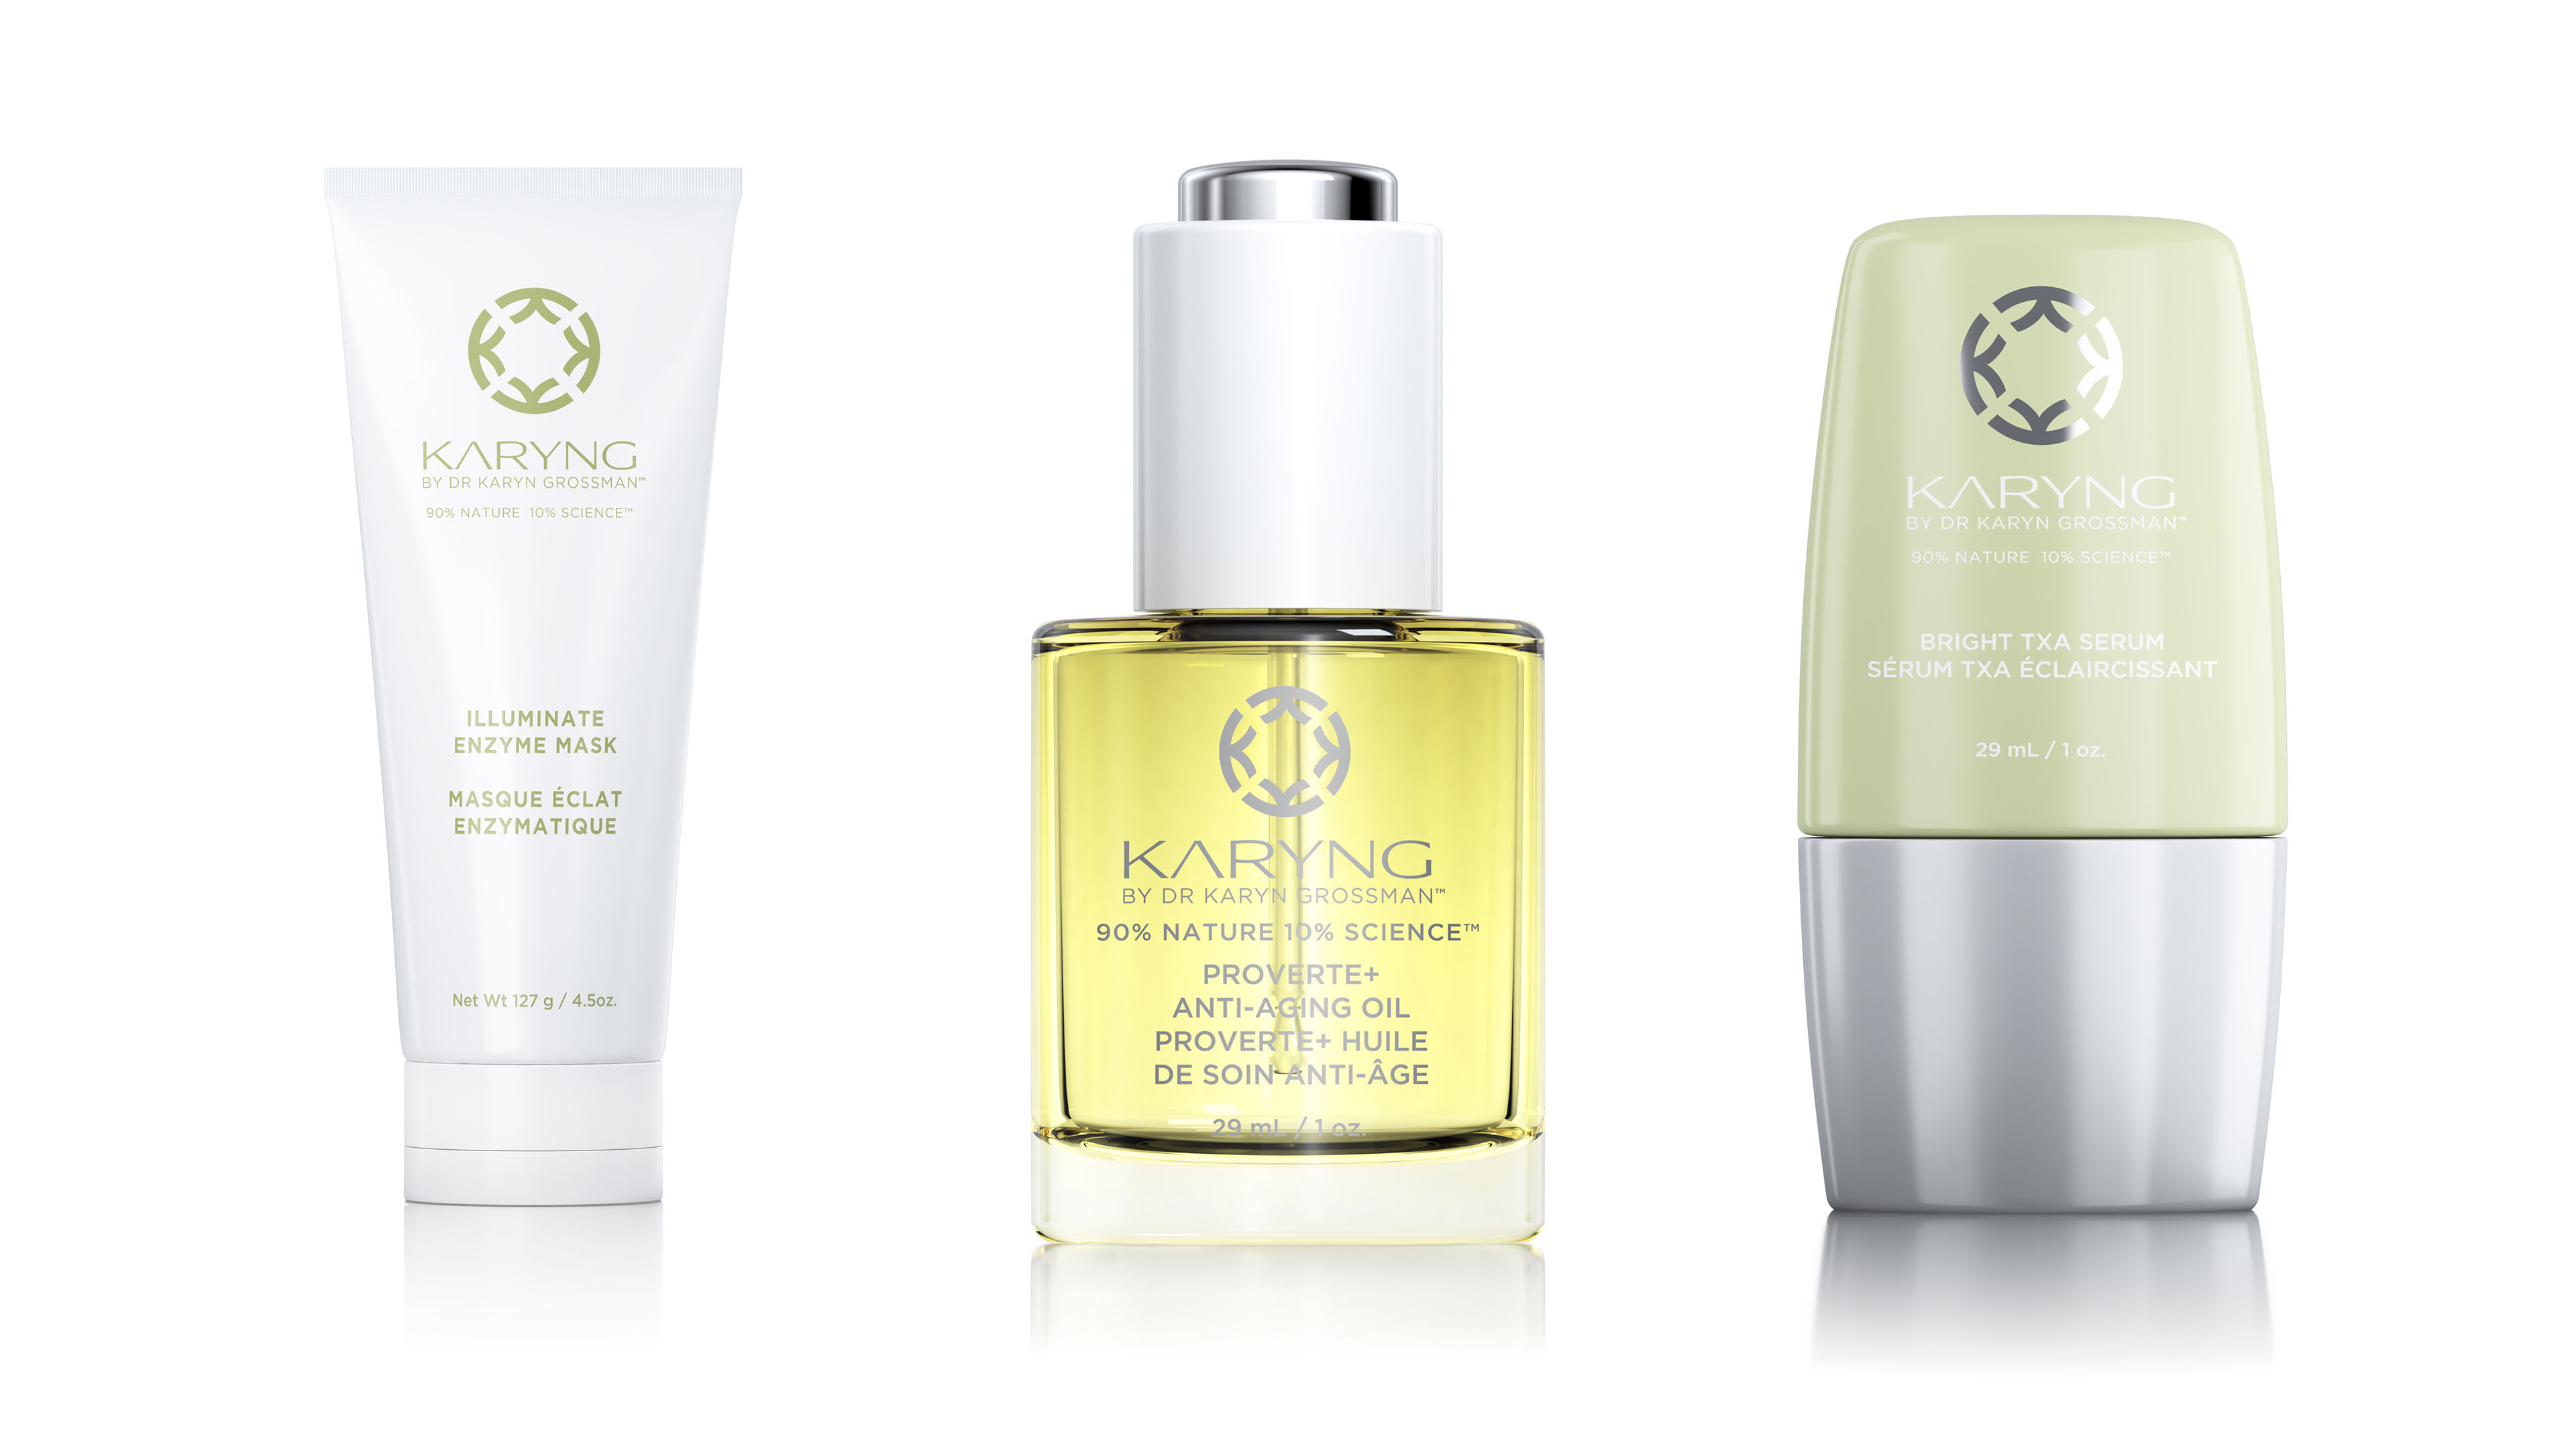 Kayng skin care enzyme mask, anti-aging oil, and serum